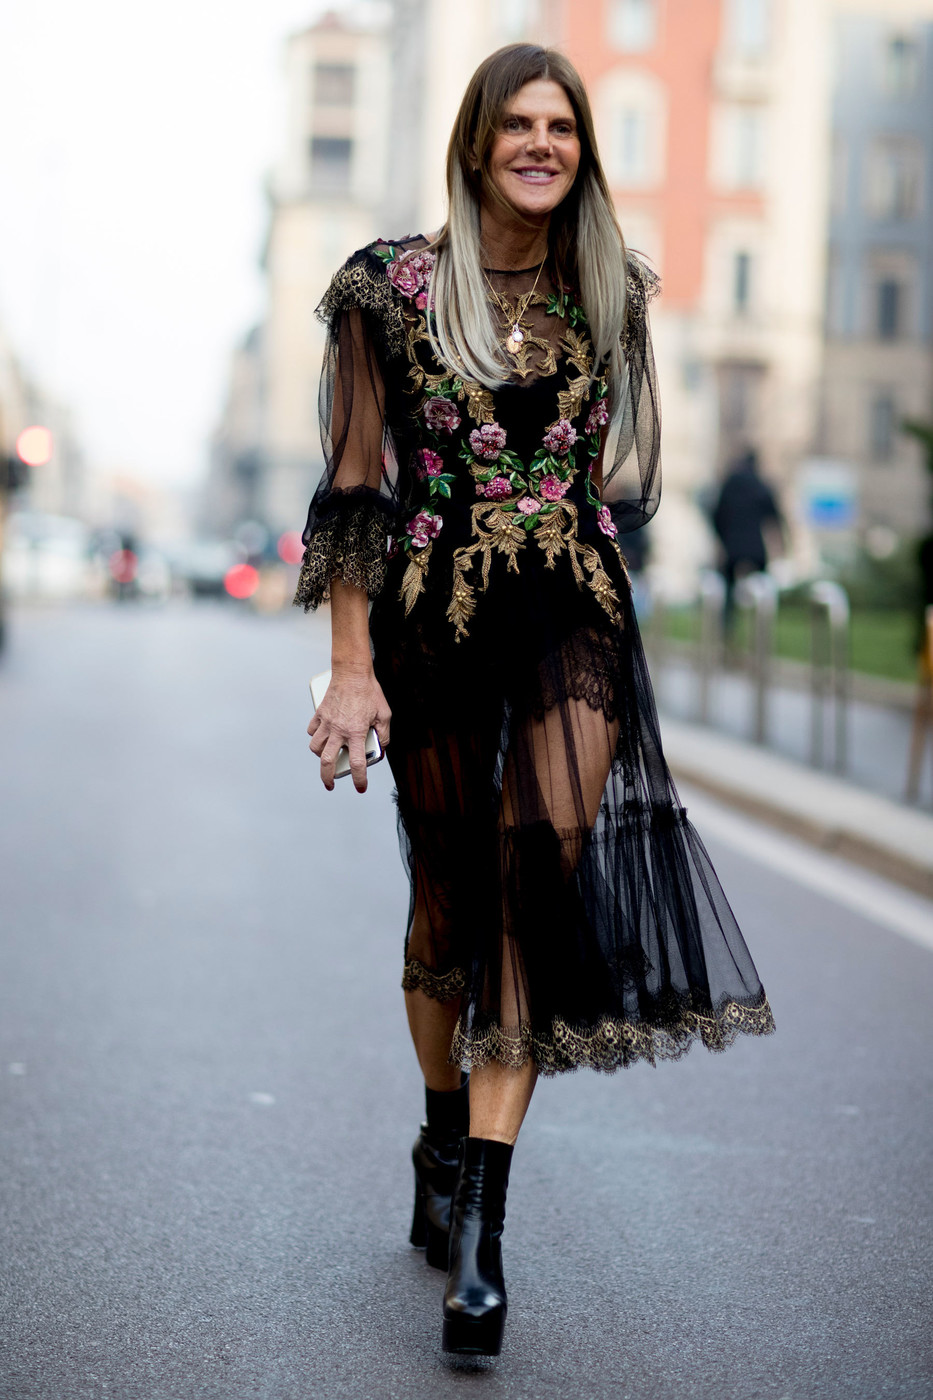 Sheer Style The Street Style At Milan Fashion Week Was Seriously Chic Livingly